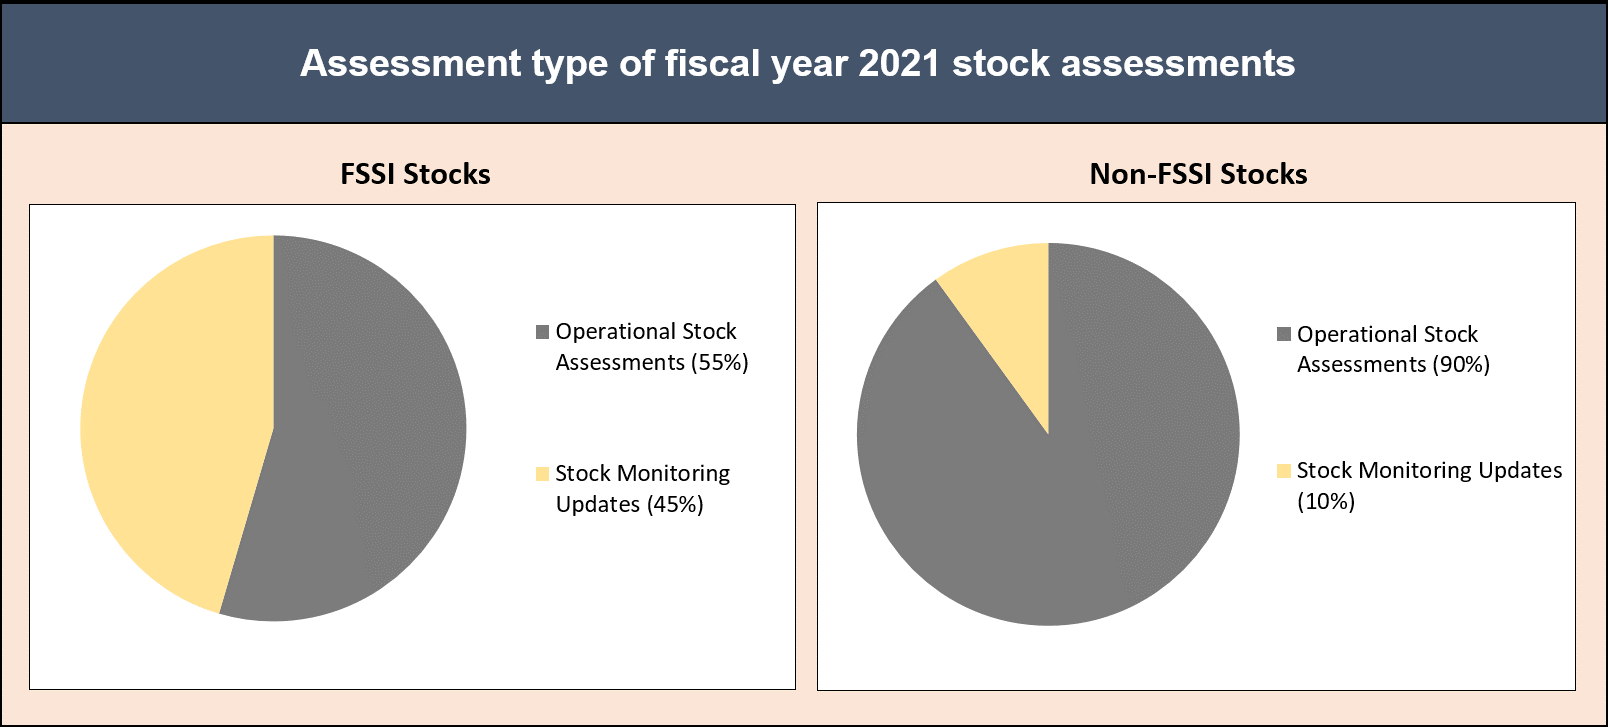 Pie charts depicting the types of stock assessments conducted during fiscal year 2021.